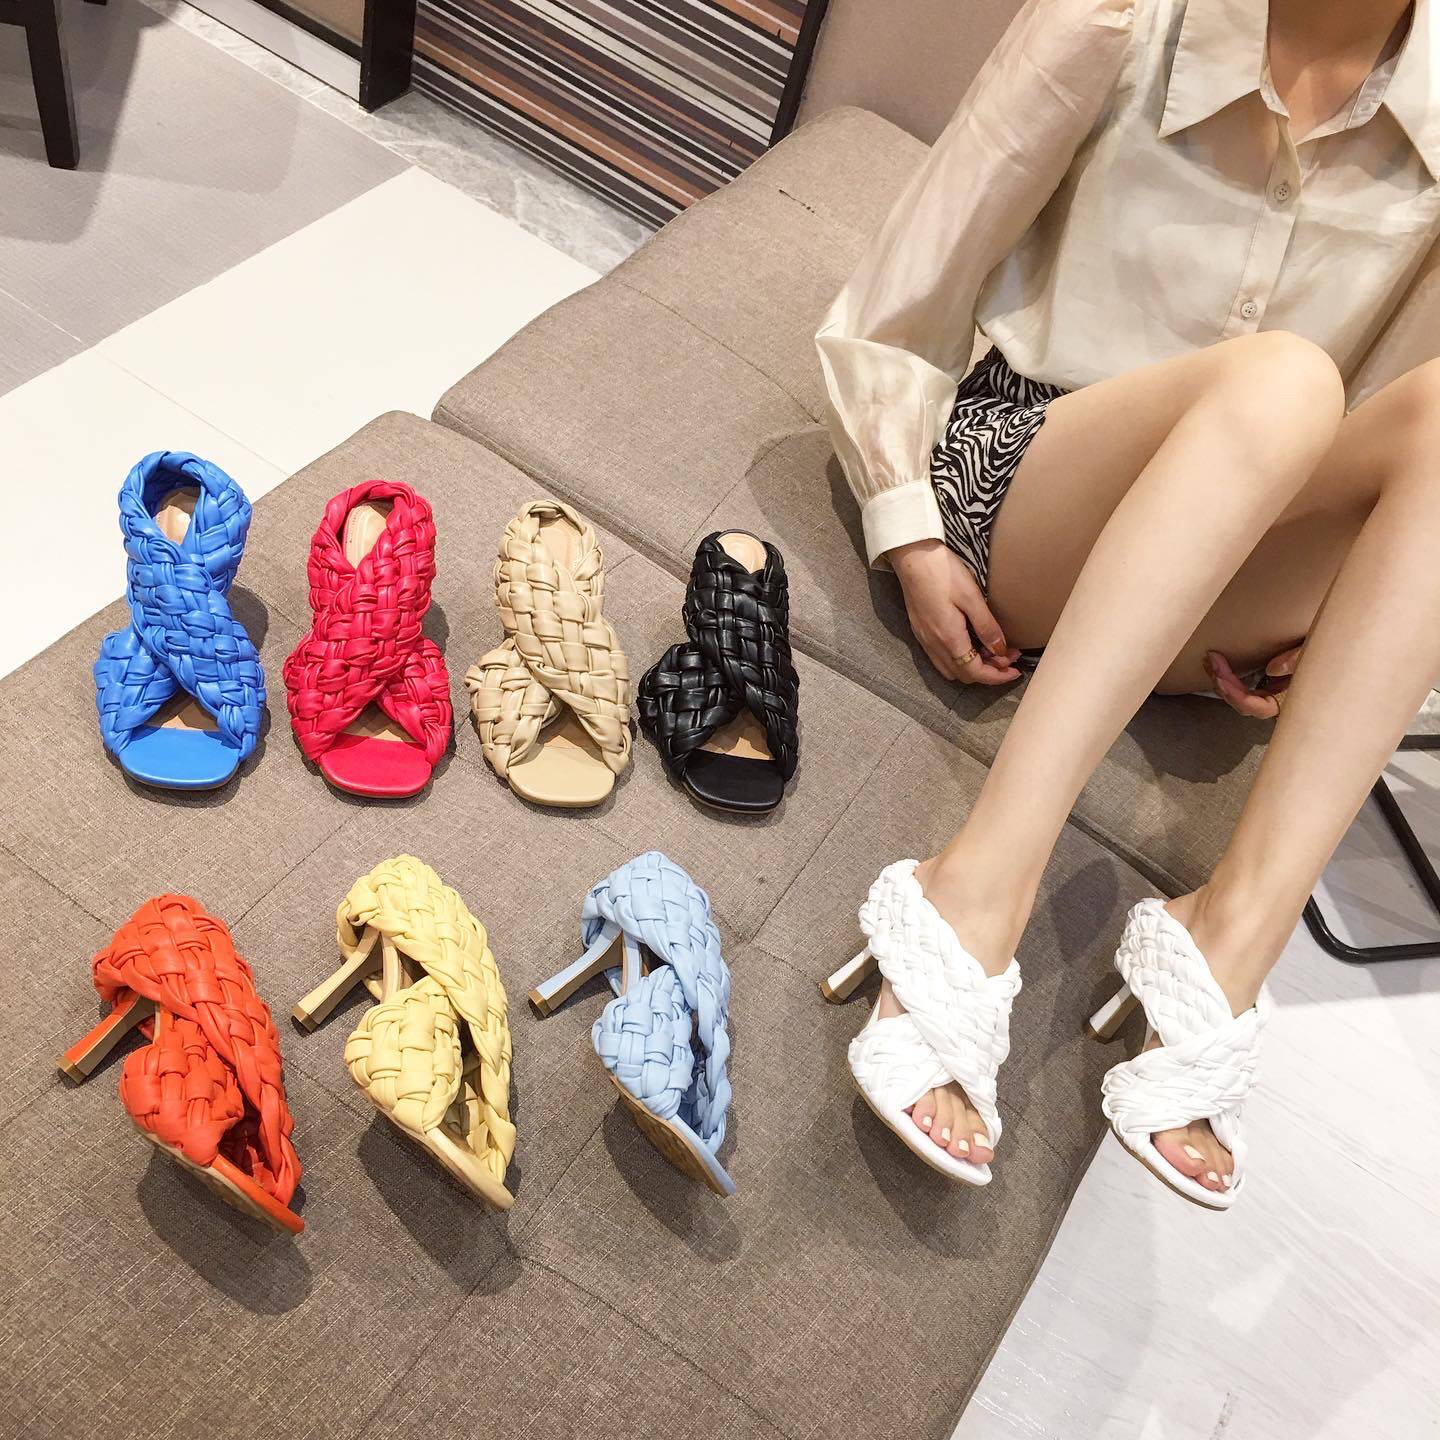 2021 new cross woven sandals womens open toe fish mouth high heels European and American fashion trend sandals in summer